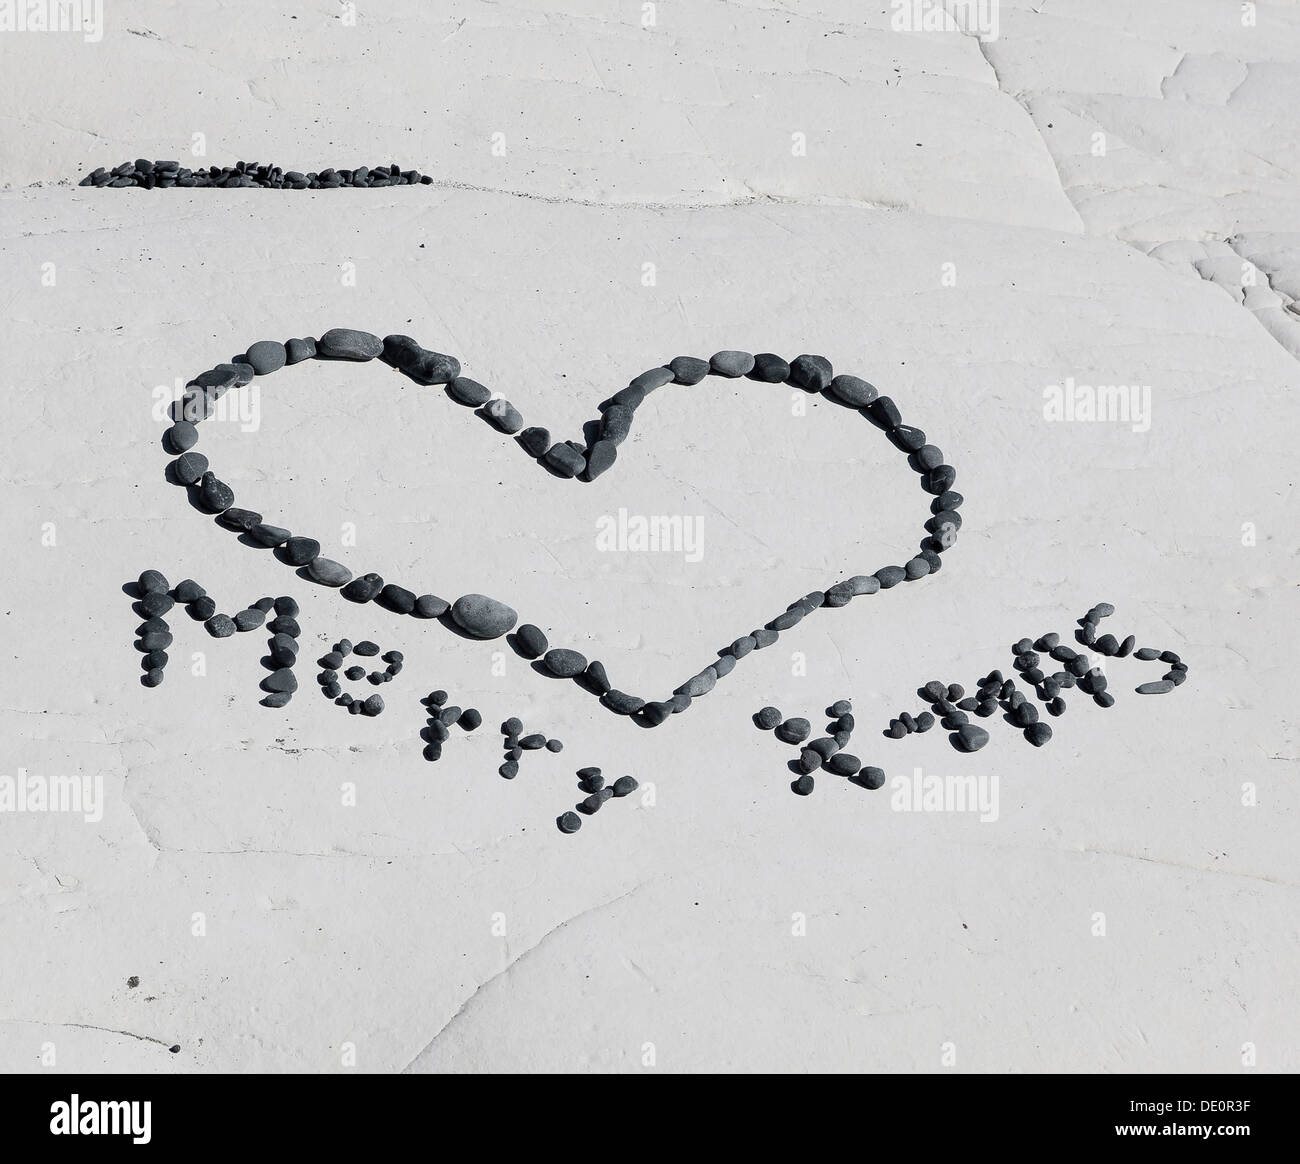 Merry X-Mas, made of stones laid on a rock - Stock Image